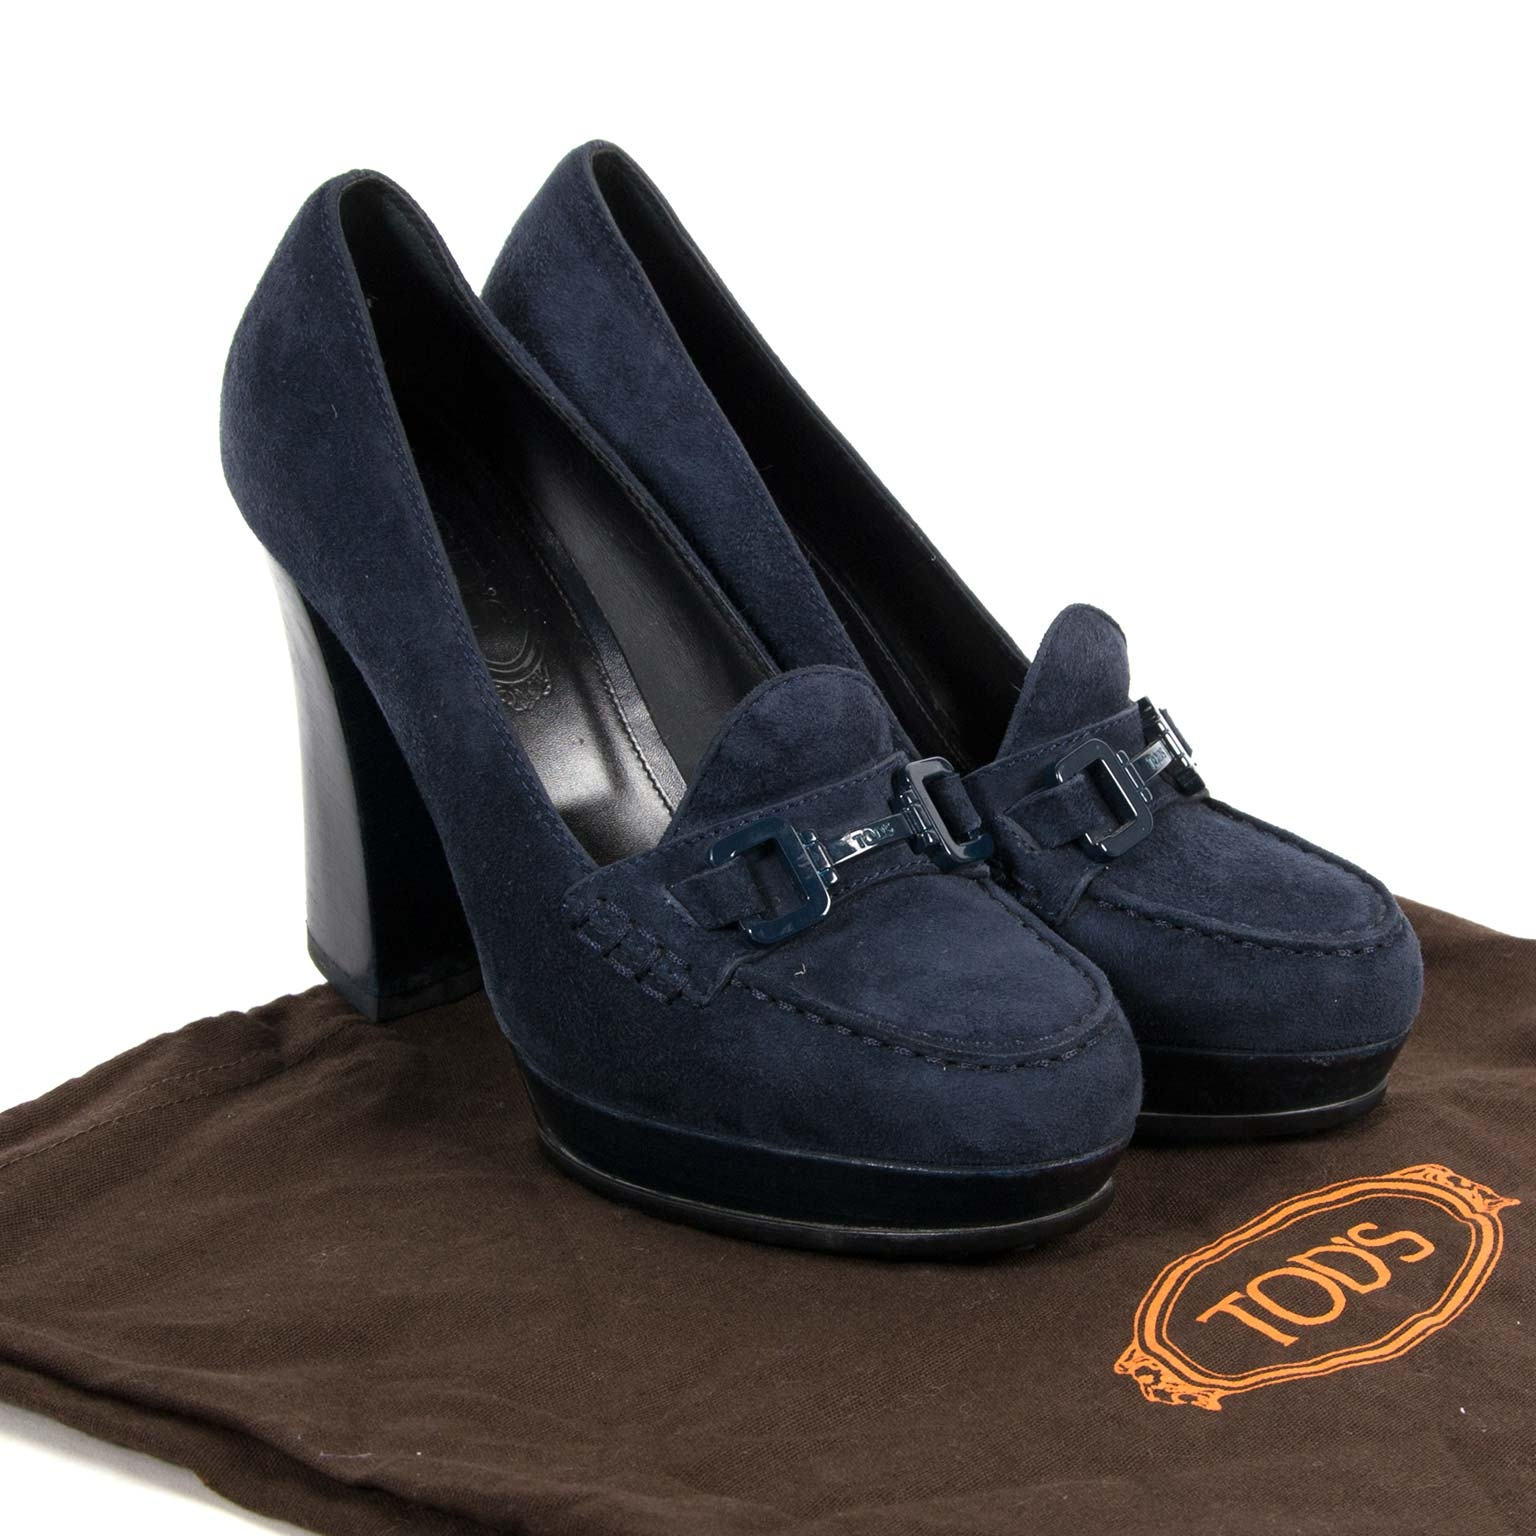 tods blue suede horsebit loafer style pumps now for sale at labellov vintage fashion webshop belgium